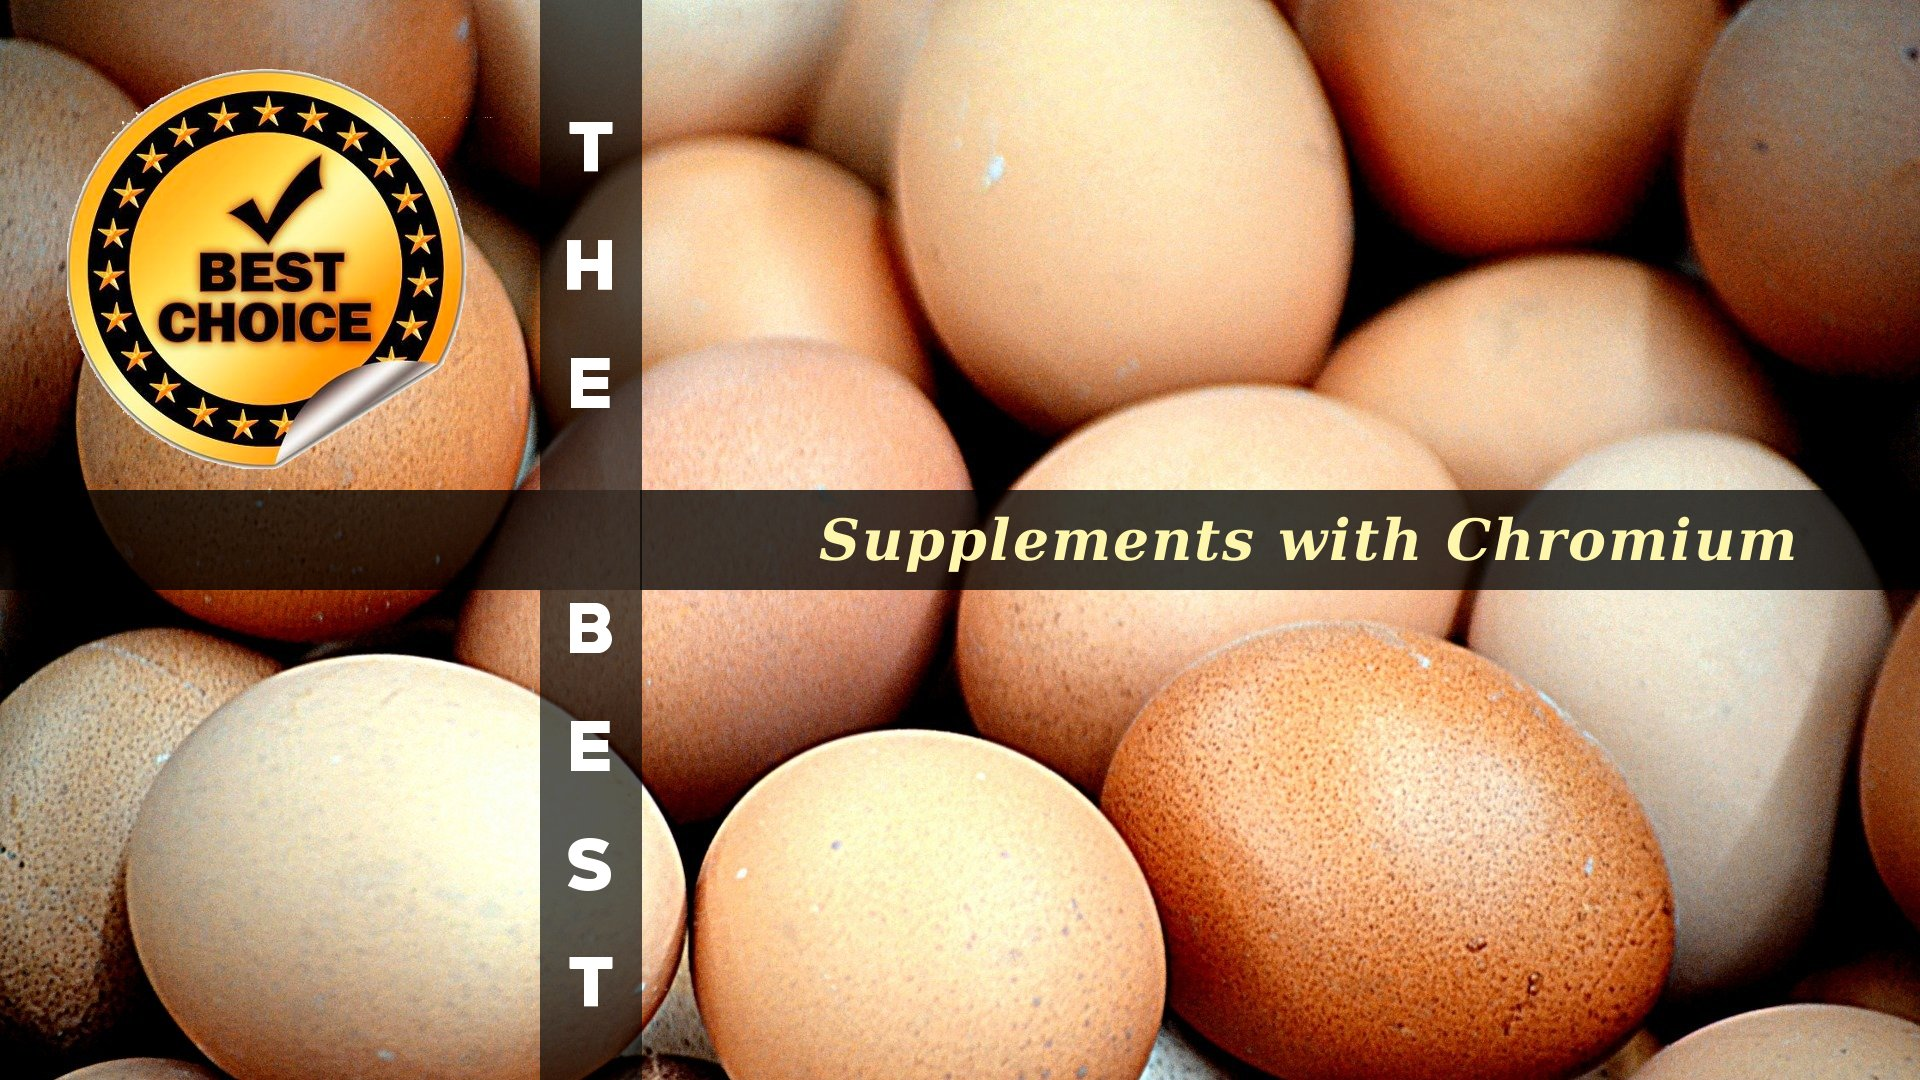 The Supplements with Chromium